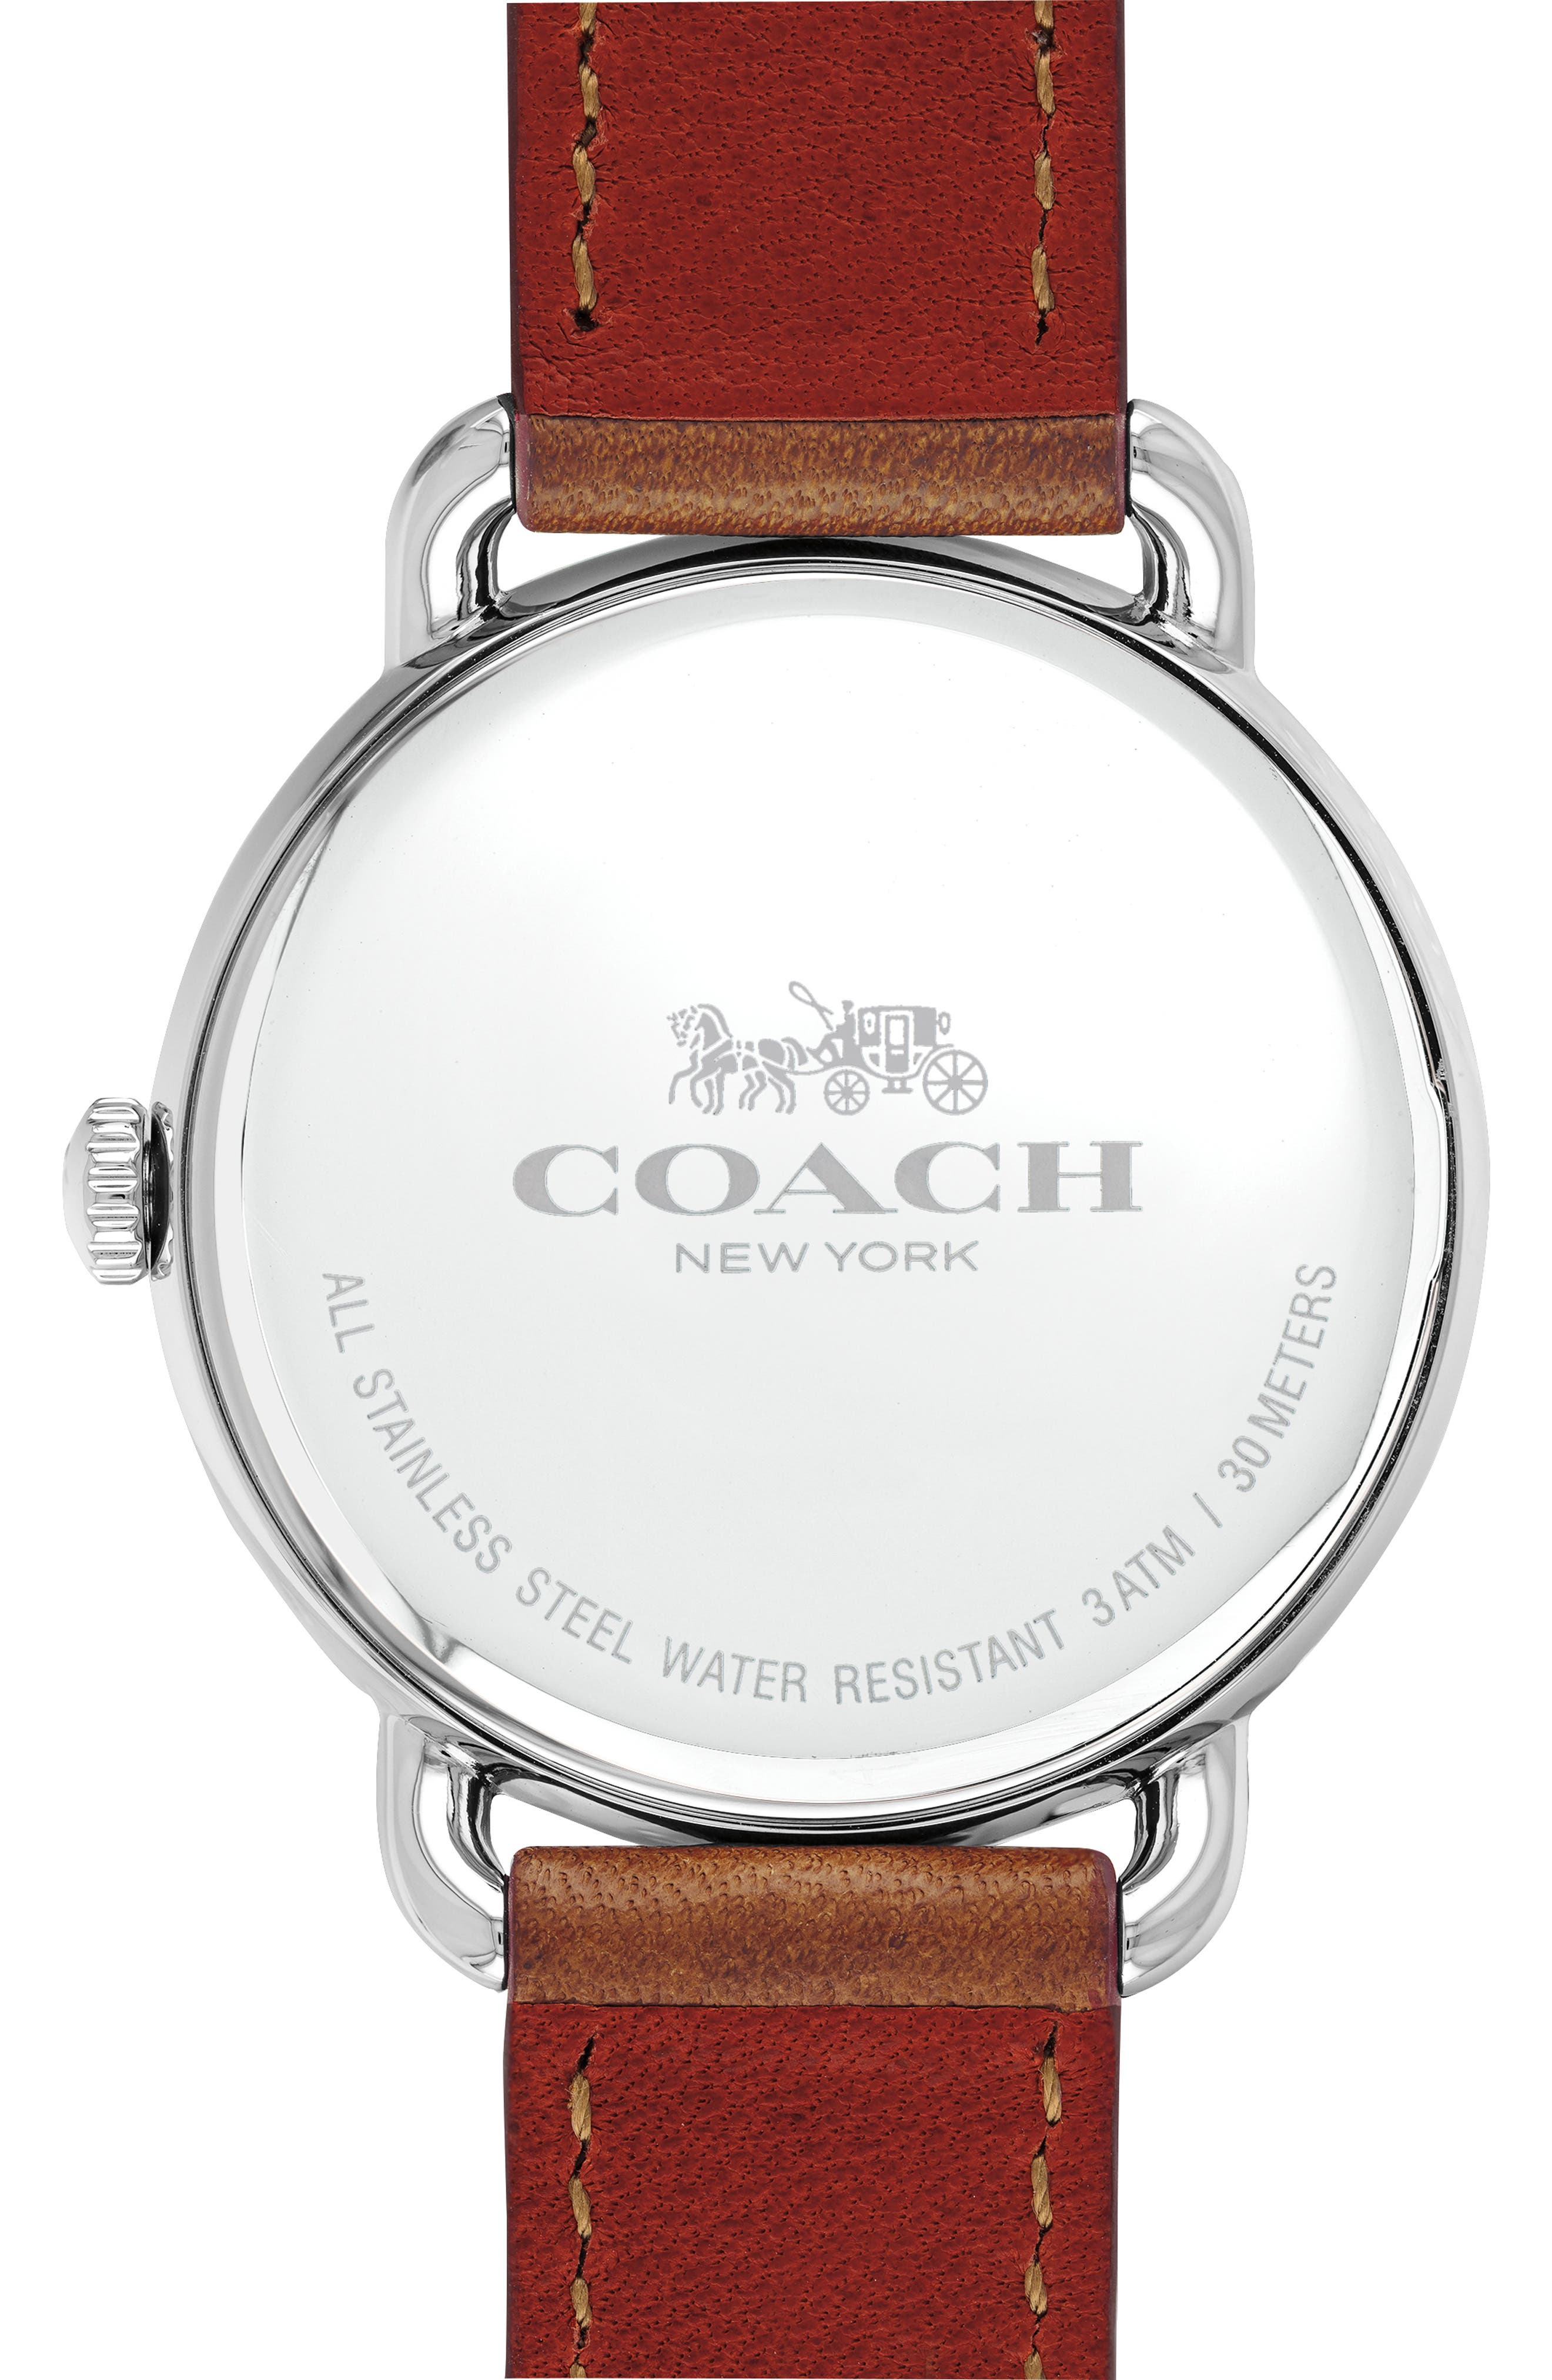 Delancey Charm Detail Leather Strap Watch, 36mm,                             Alternate thumbnail 2, color,                             BROWN/ SILVER